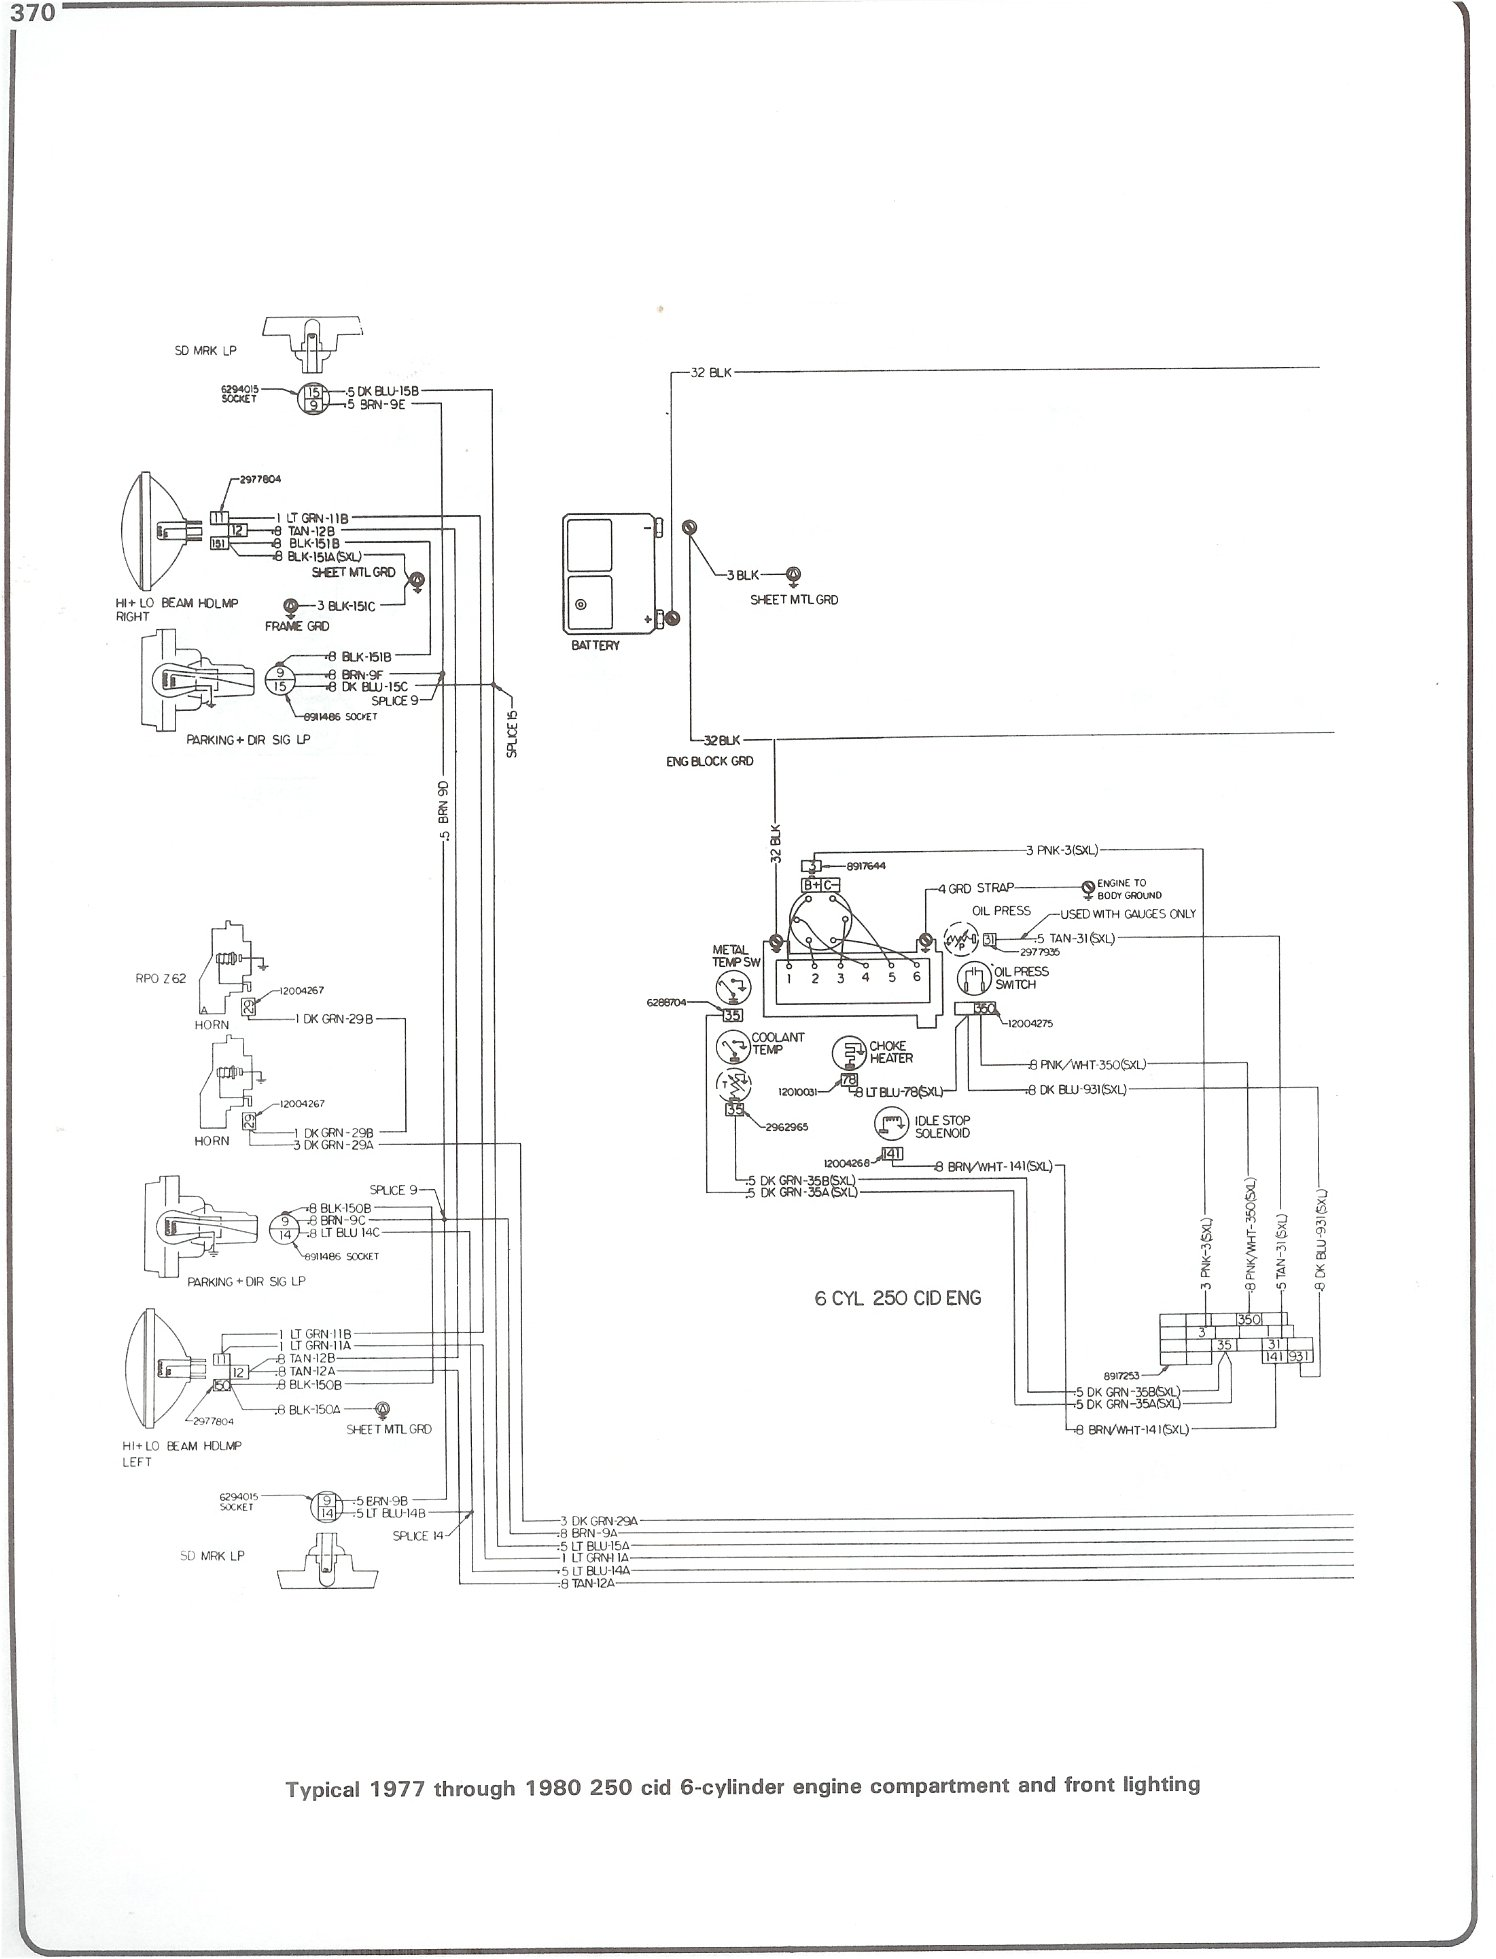 Chevy C10 Ignition Switch Wiring Diagram Will Be A 1970 Ford Light Complete 73 87 Diagrams Rh Forum 87chevytrucks Com